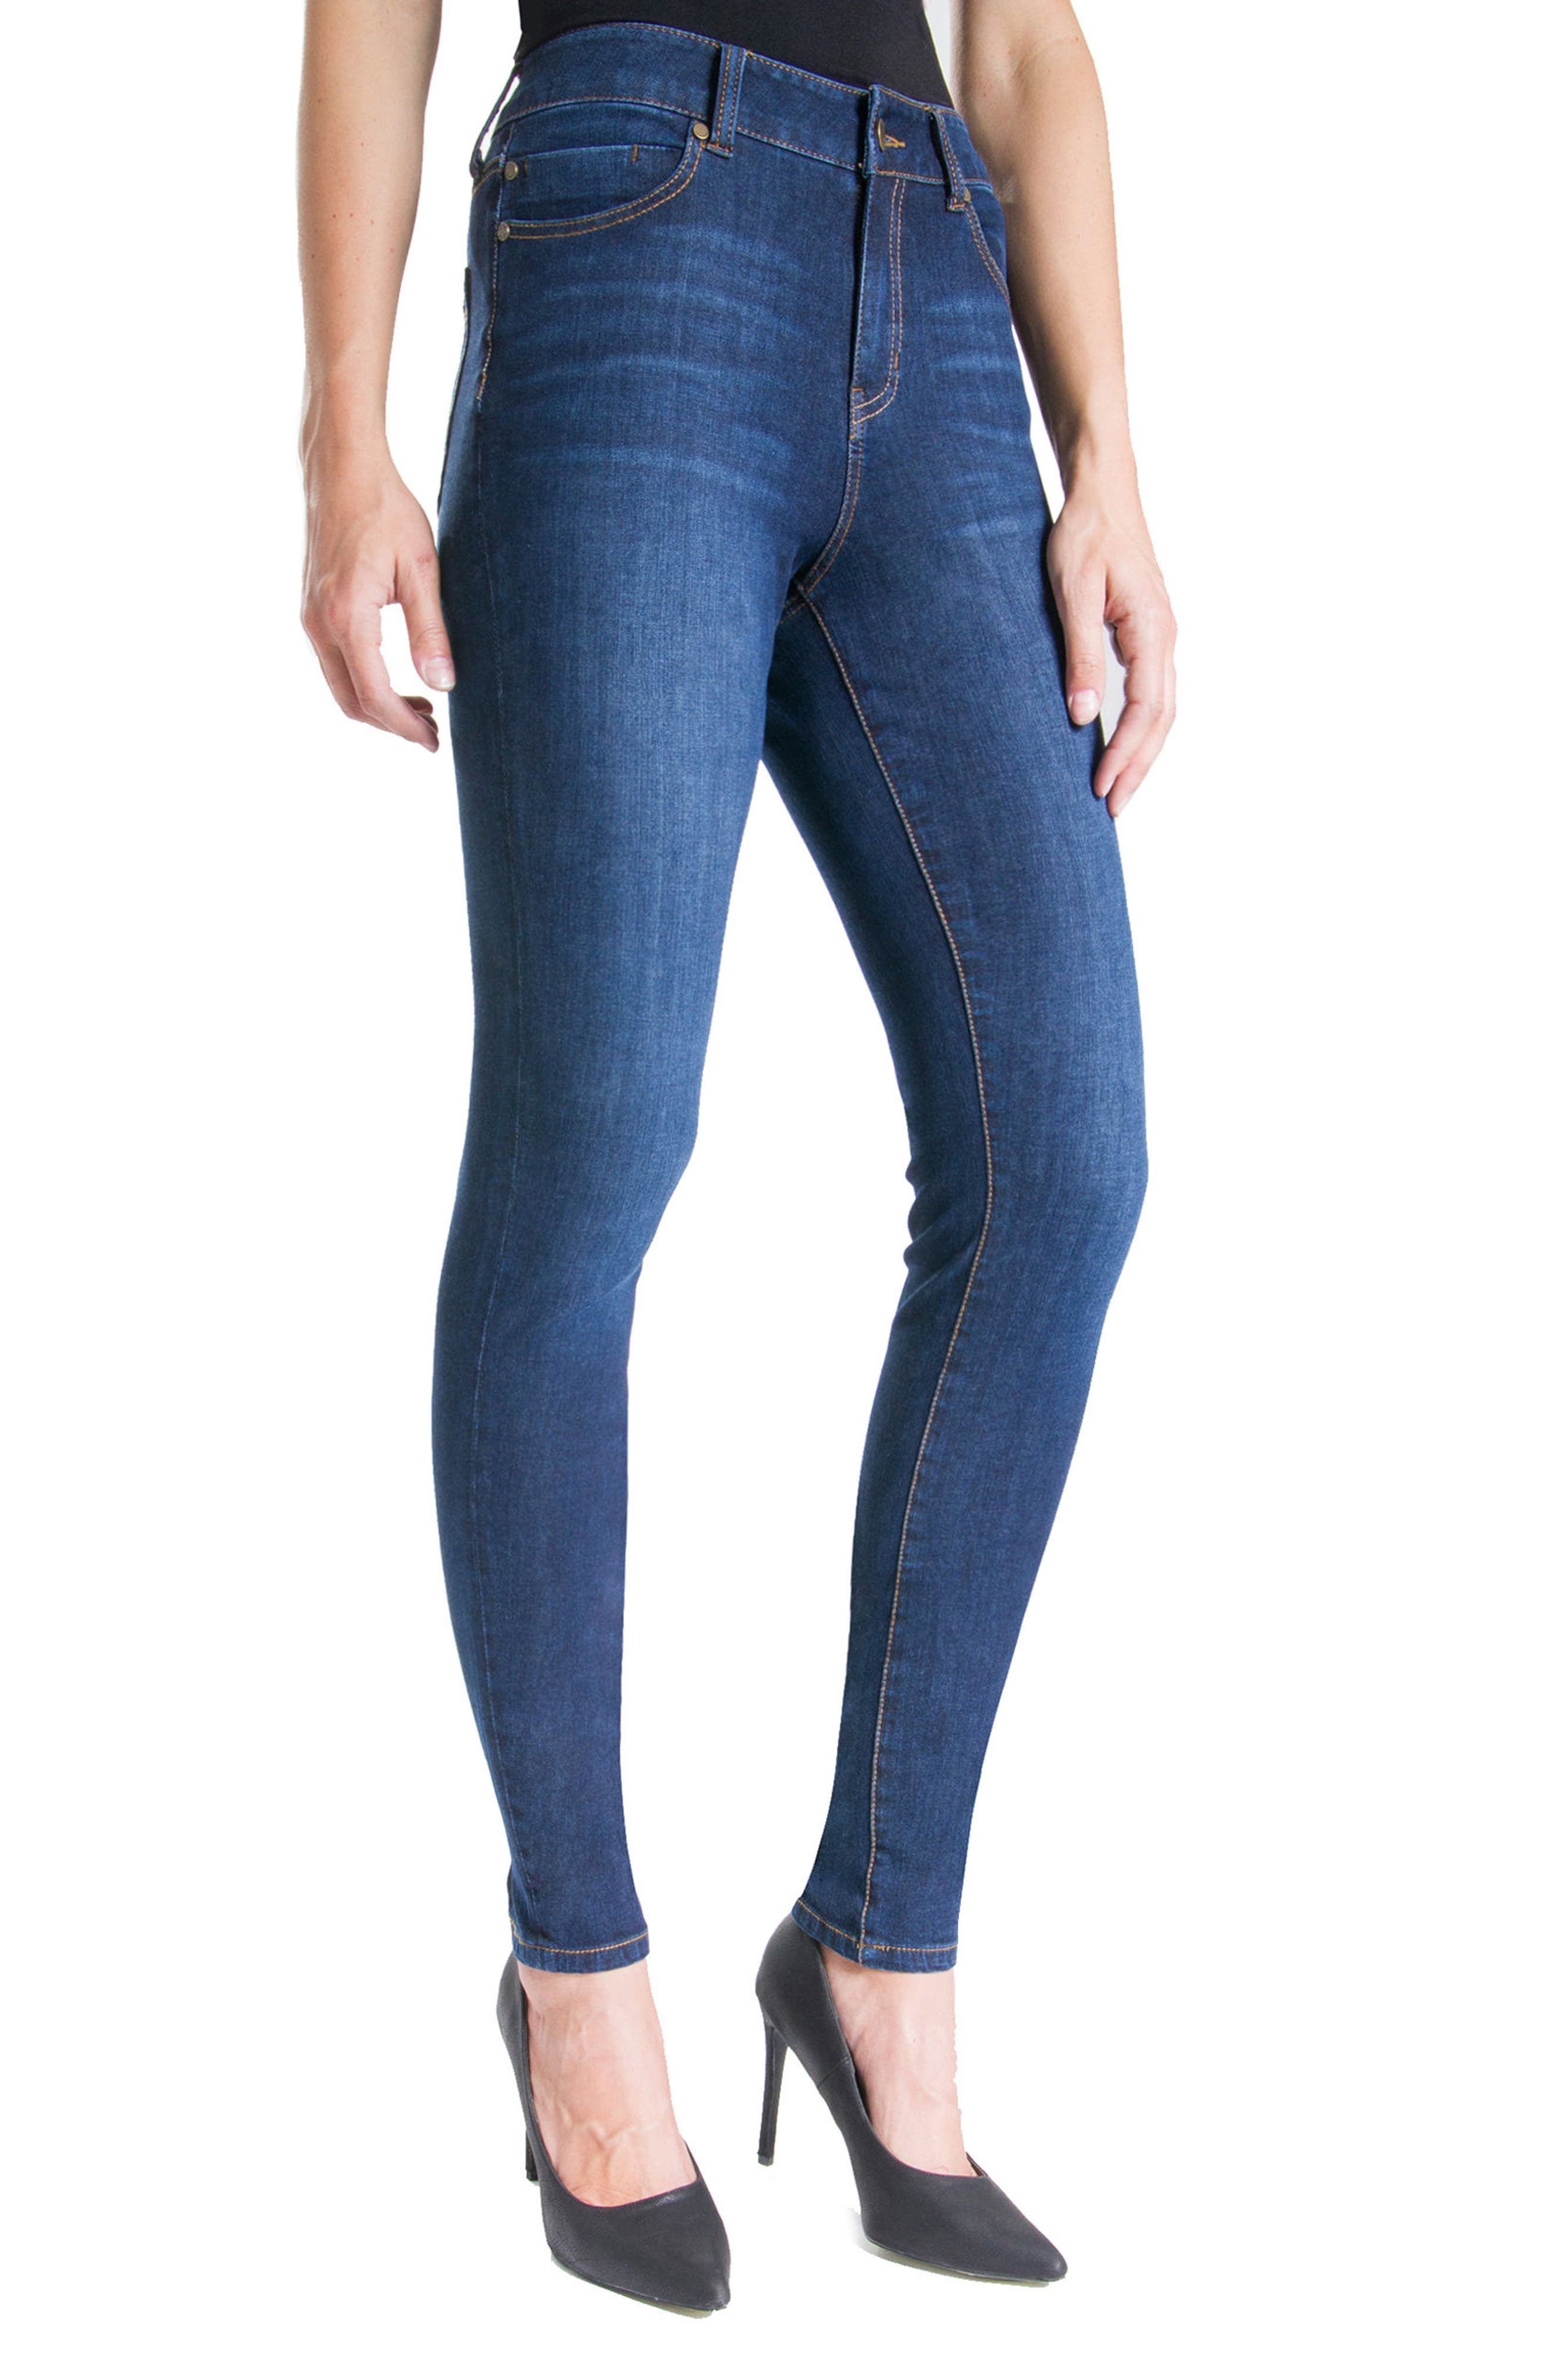 Abby Stretch Skinny Jeans,                             Alternate thumbnail 3, color,                             401